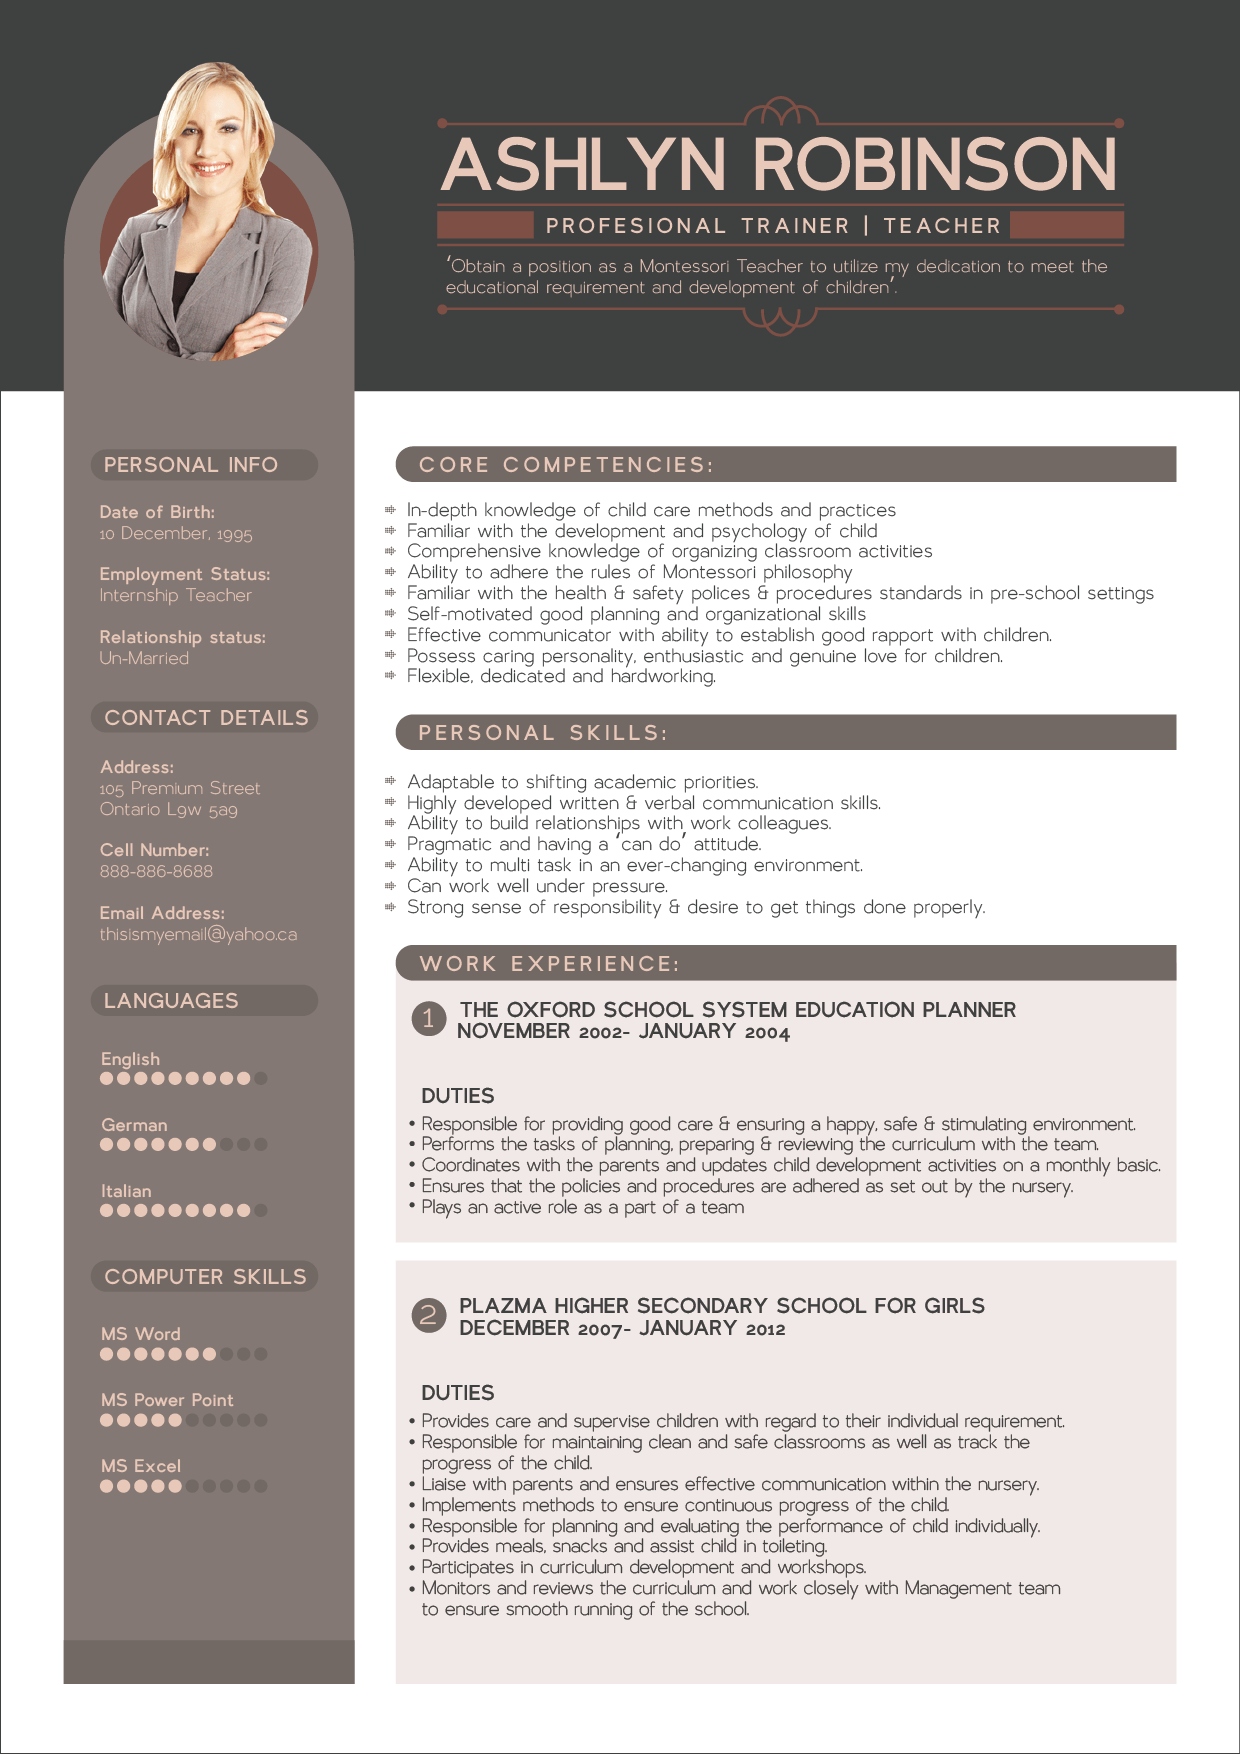 How To Make A Resume A Step By Step Guide 30 Examples Free Resume Cv Design Template For Trainers And Teachers